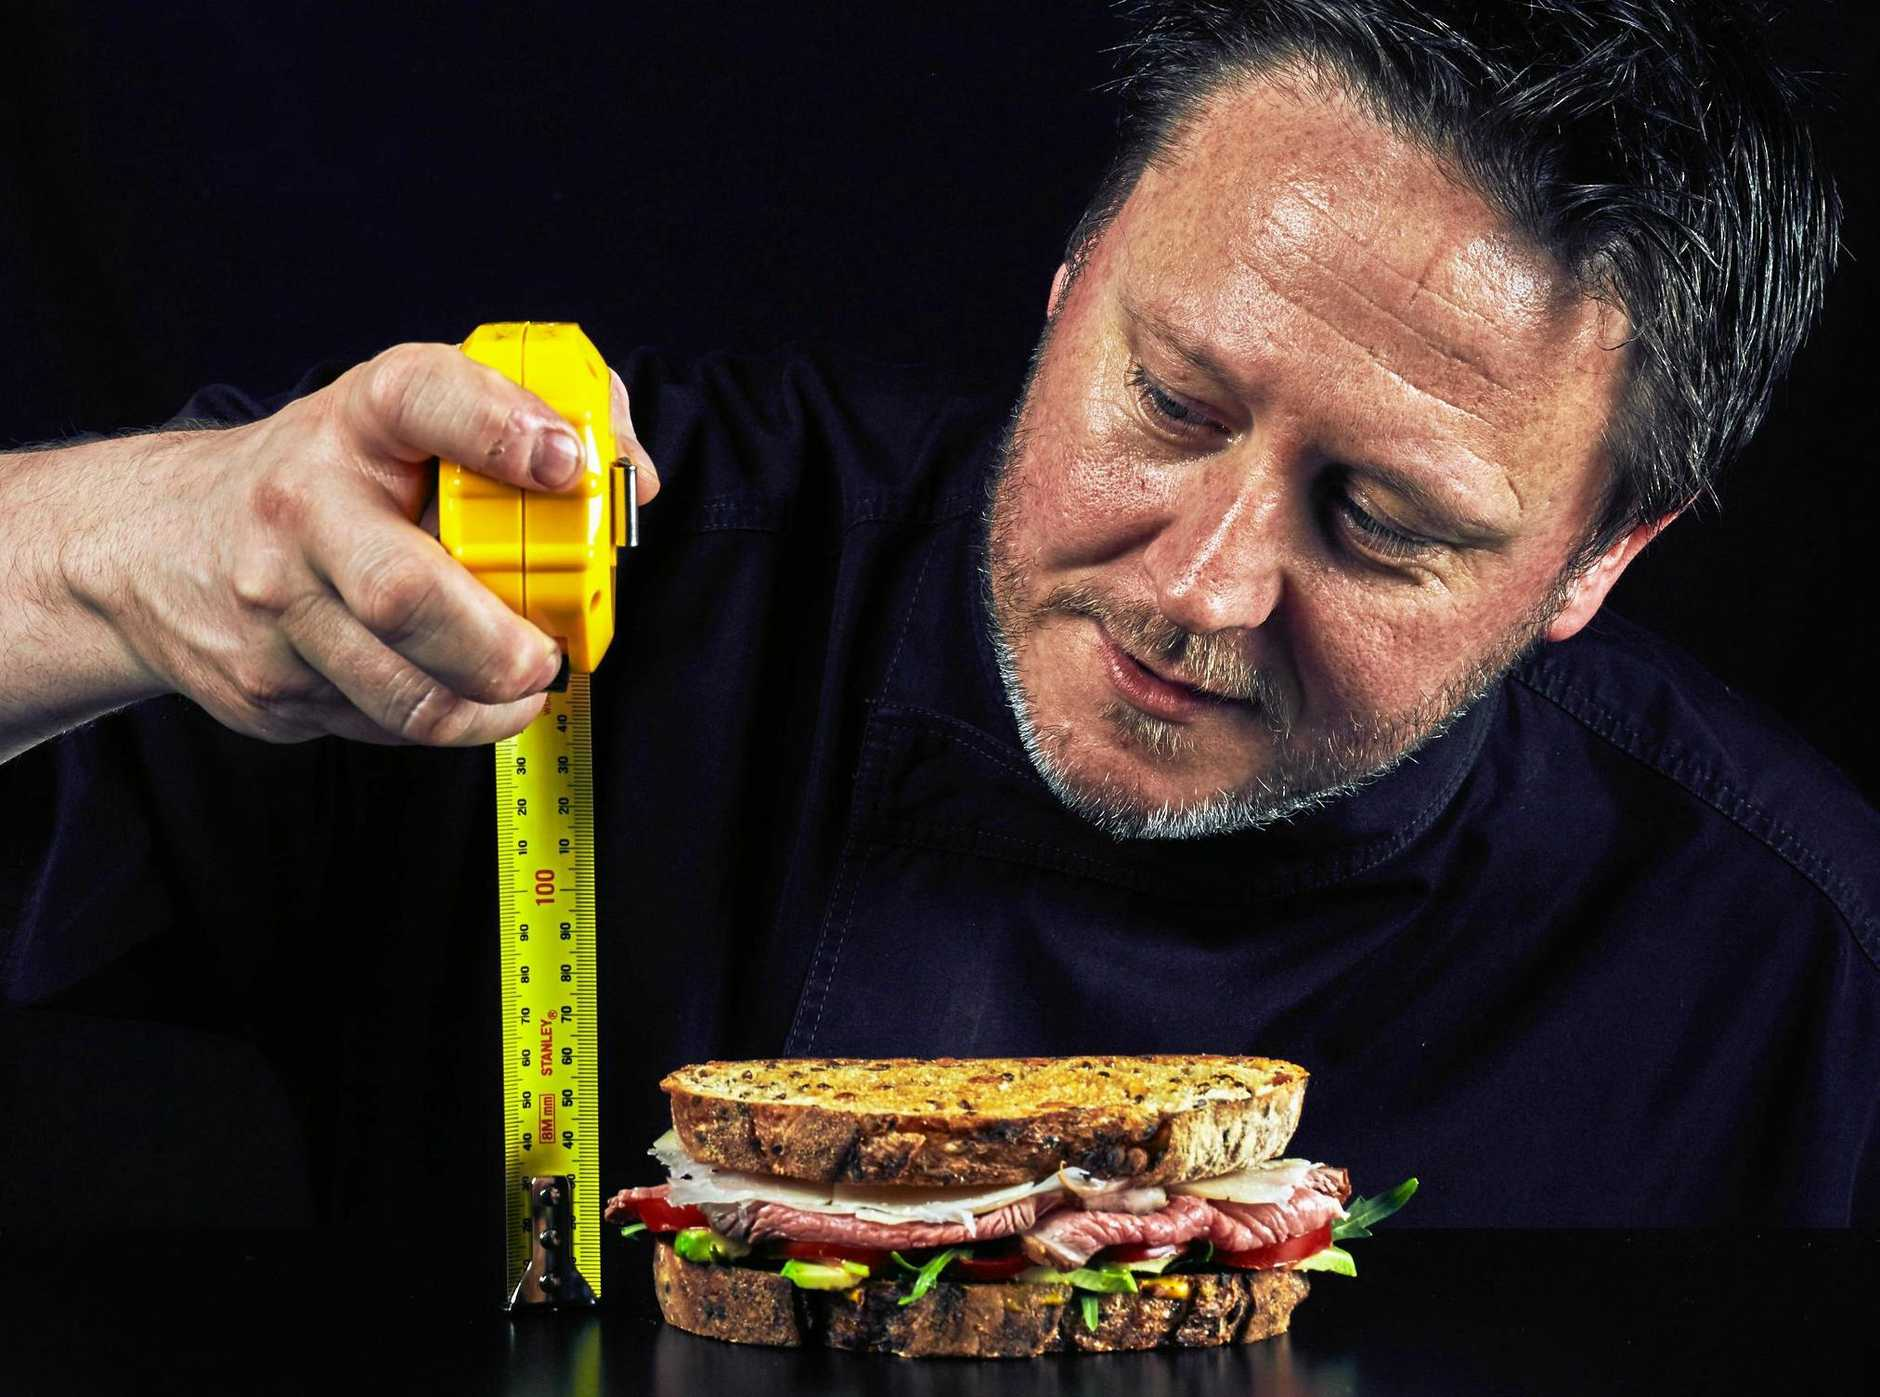 Darren Purchese's gourmet snacks are sure to measure up for fans of the humble toastie.